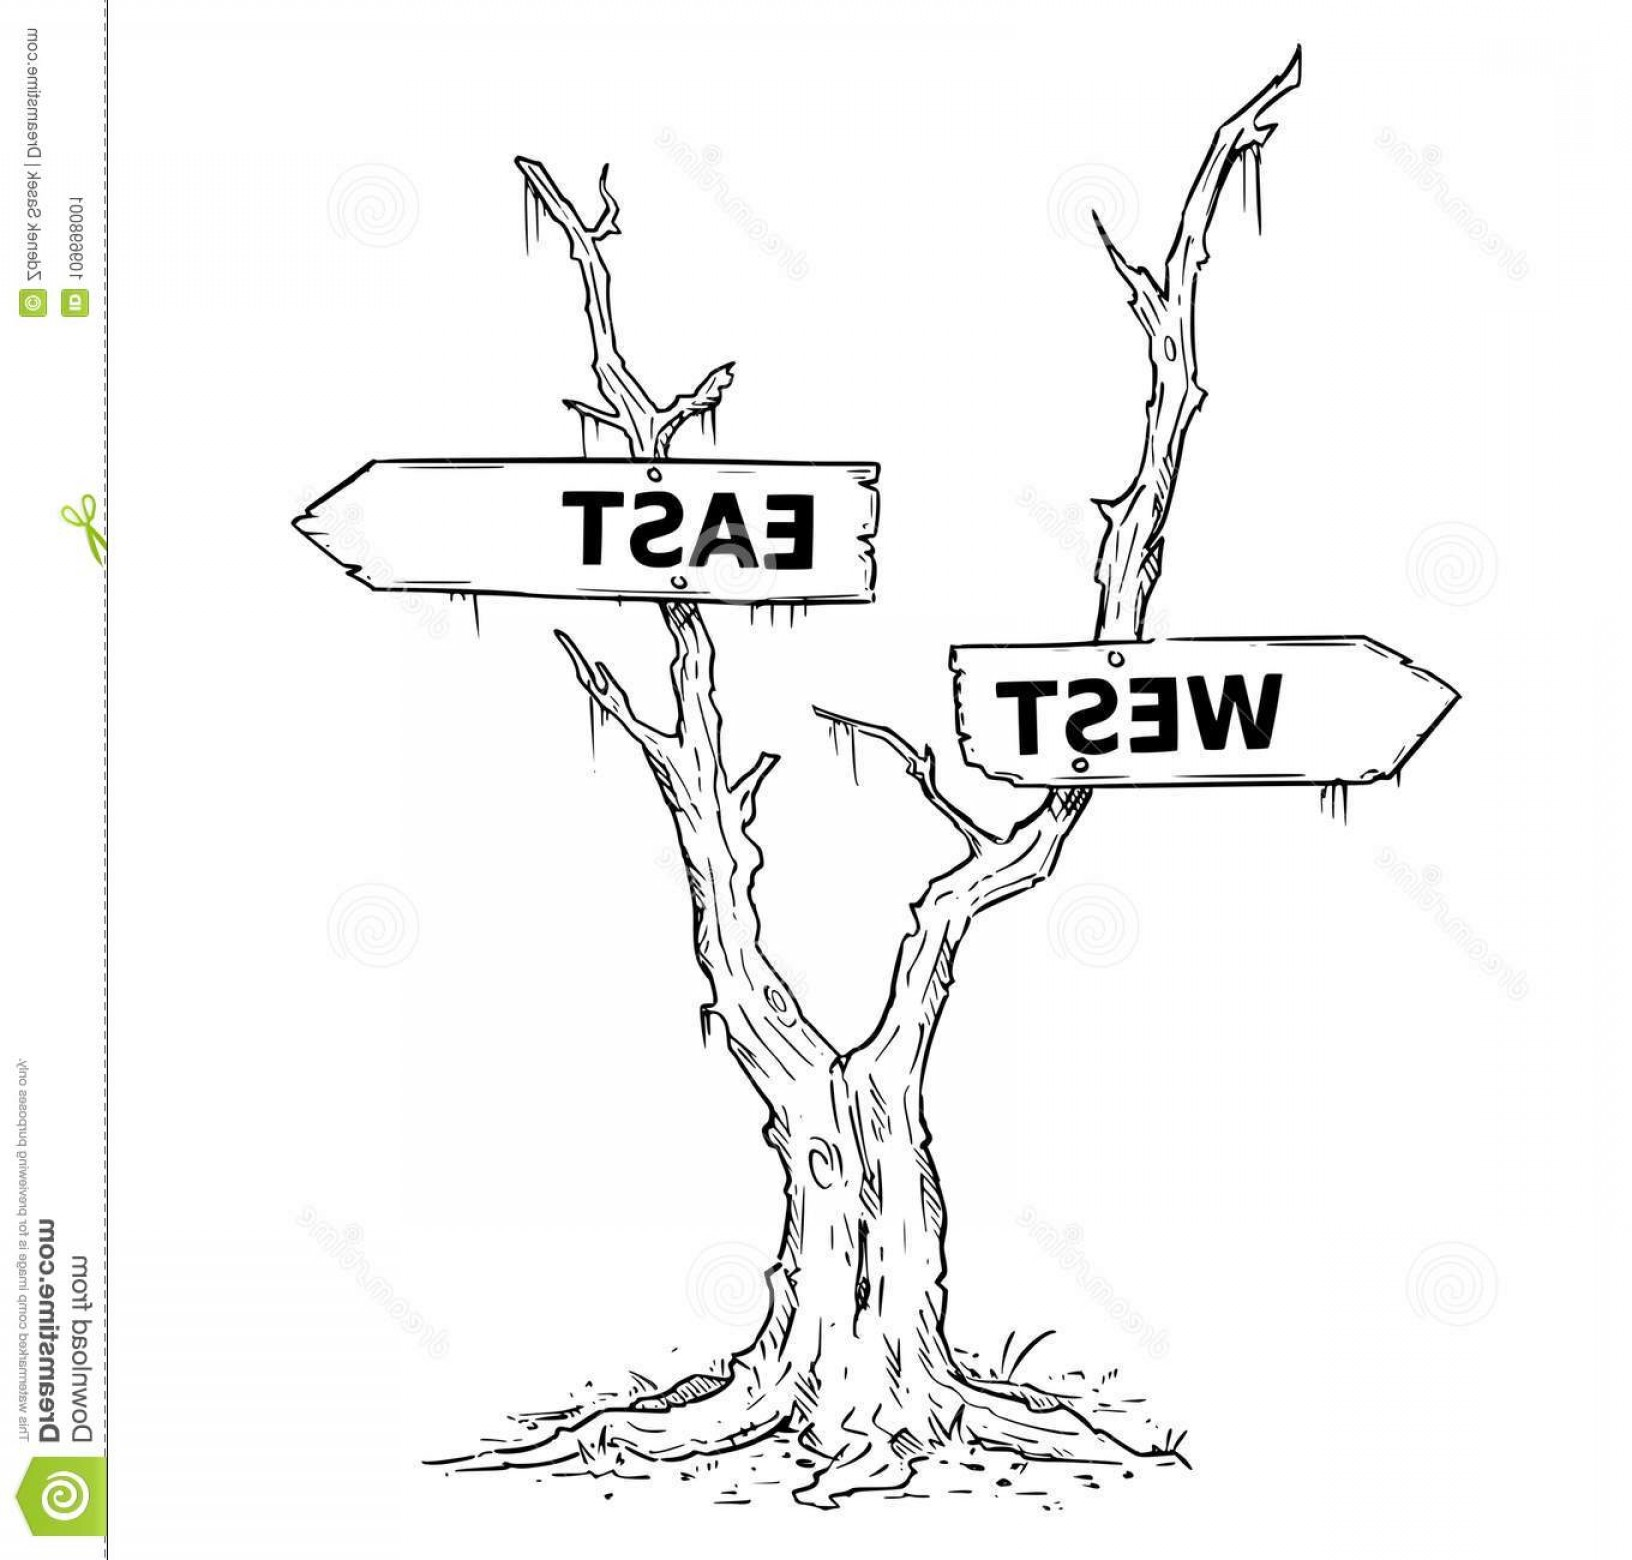 1632x1560 Two Arrow Sign Drawing West East Dead Swamp Tree Vector Drawing